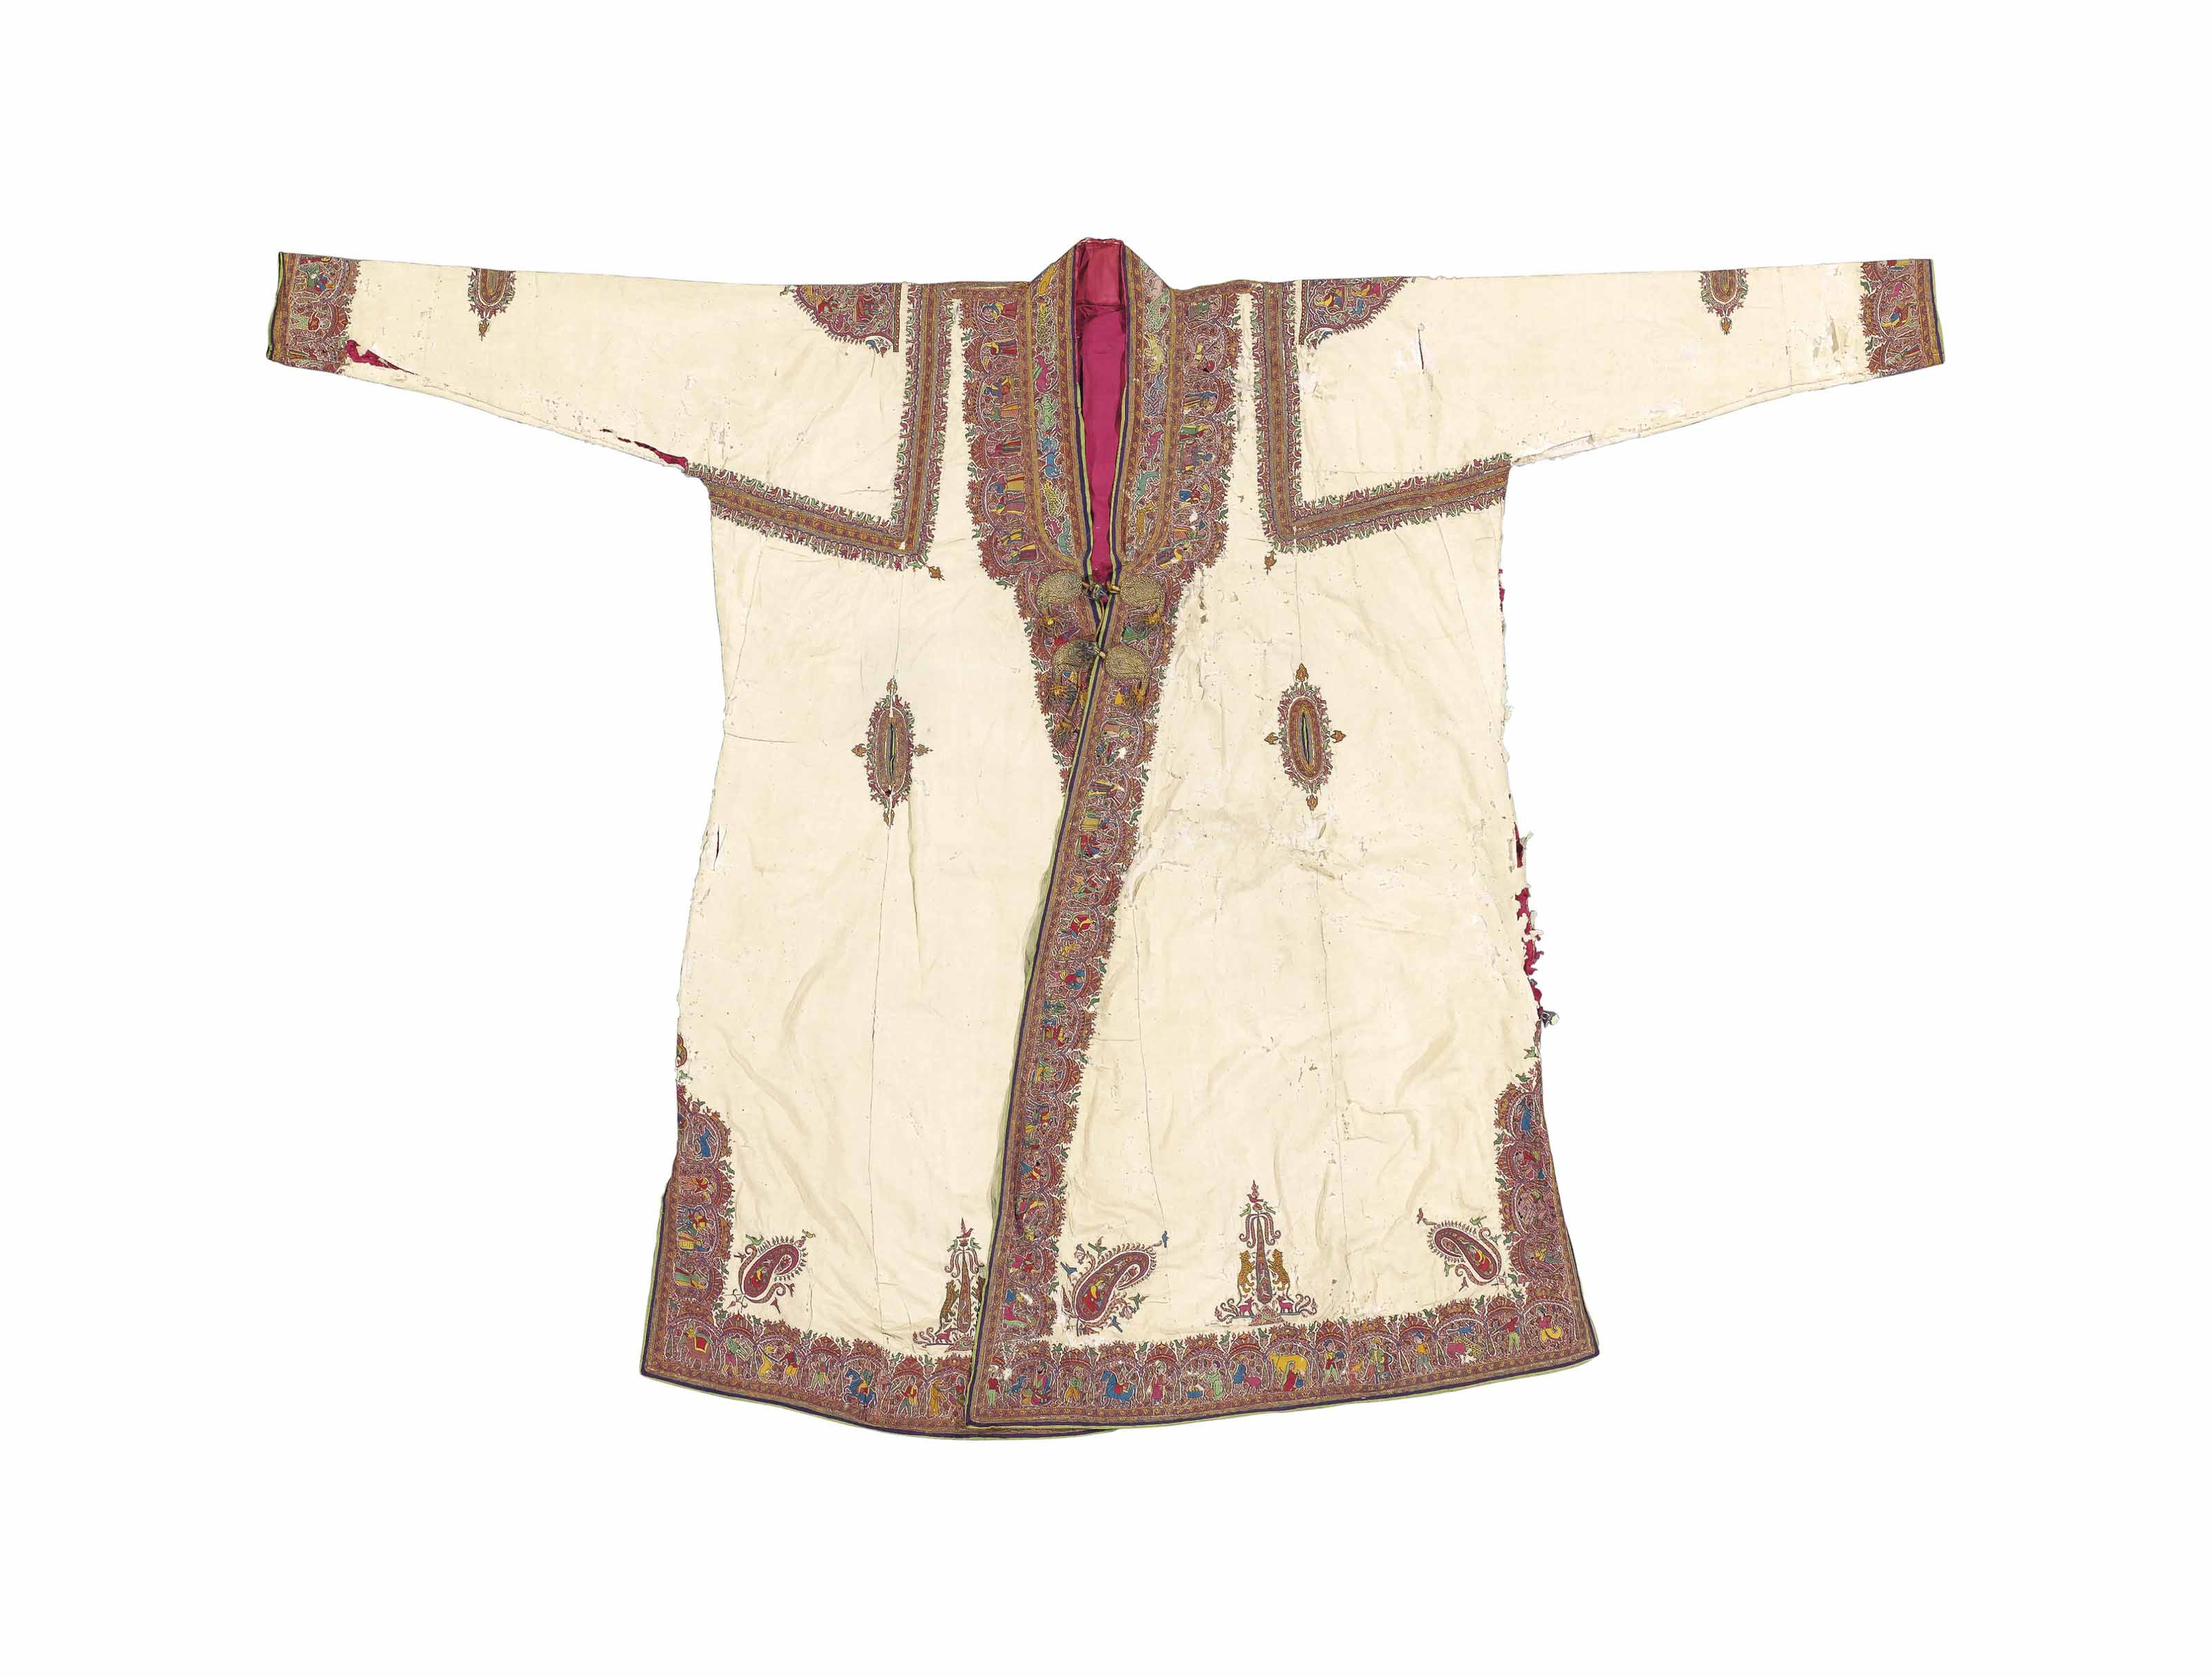 AN EMBROIDERED COAT